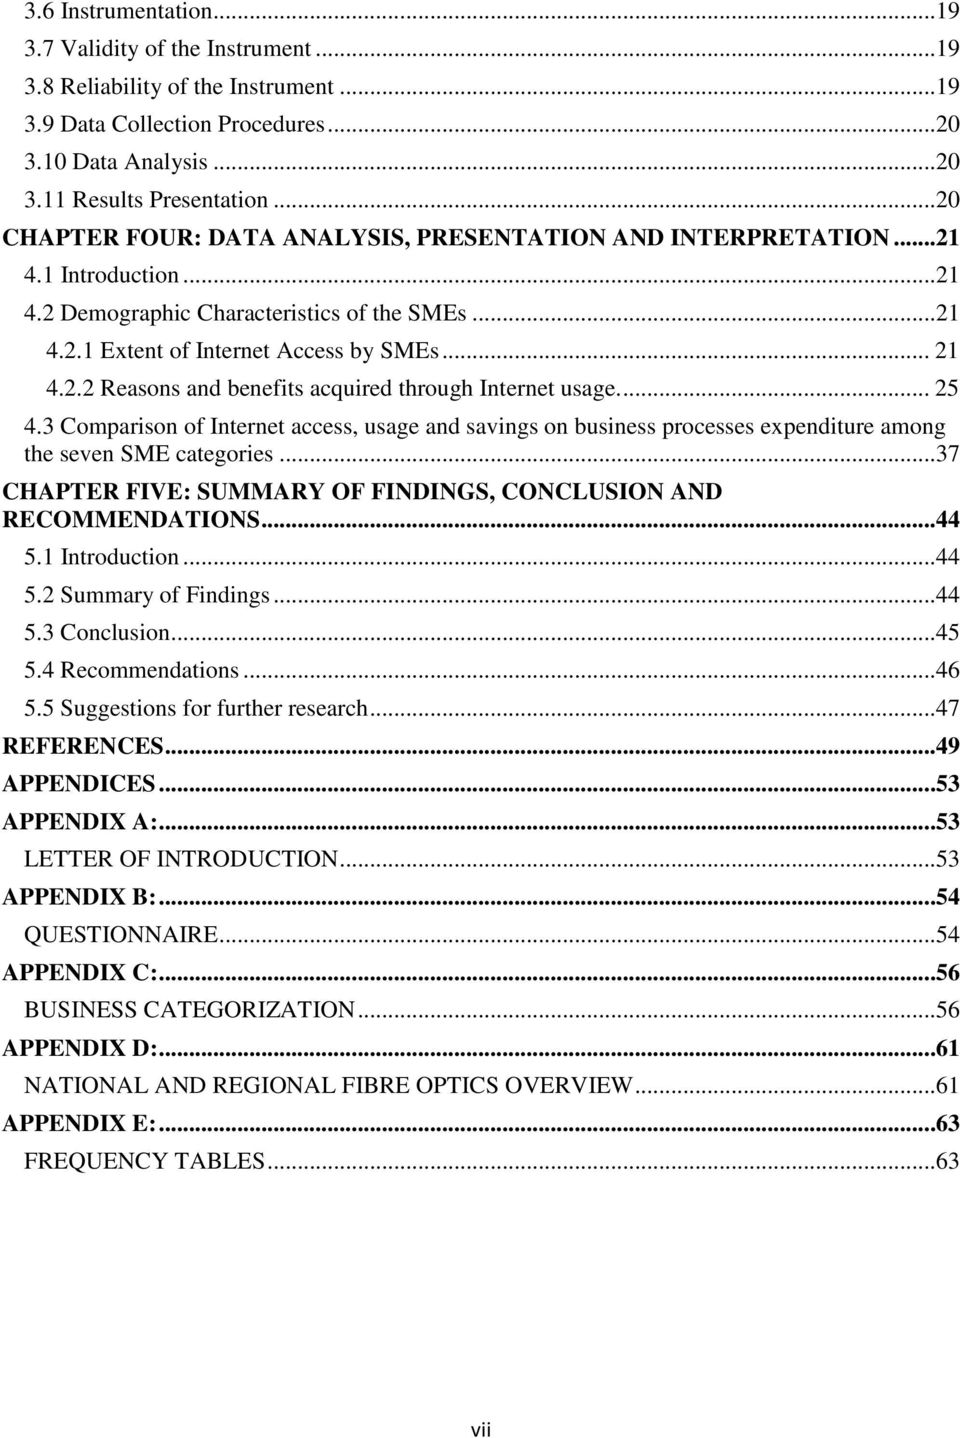 ... 25 4.3 Comparison of Internet access, usage and savings on business processes expenditure among the seven SME categories...37 CHAPTER FIVE: SUMMARY OF FINDINGS, CONCLUSION AND RECOMMENDATIONS.